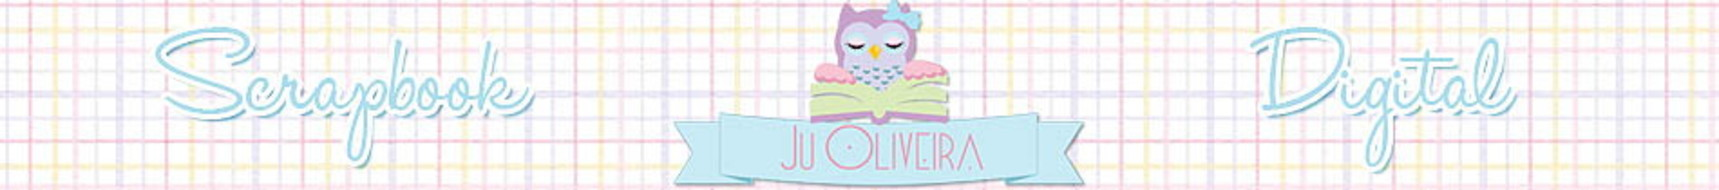 Ju Oliveira Scrapbooking Digital